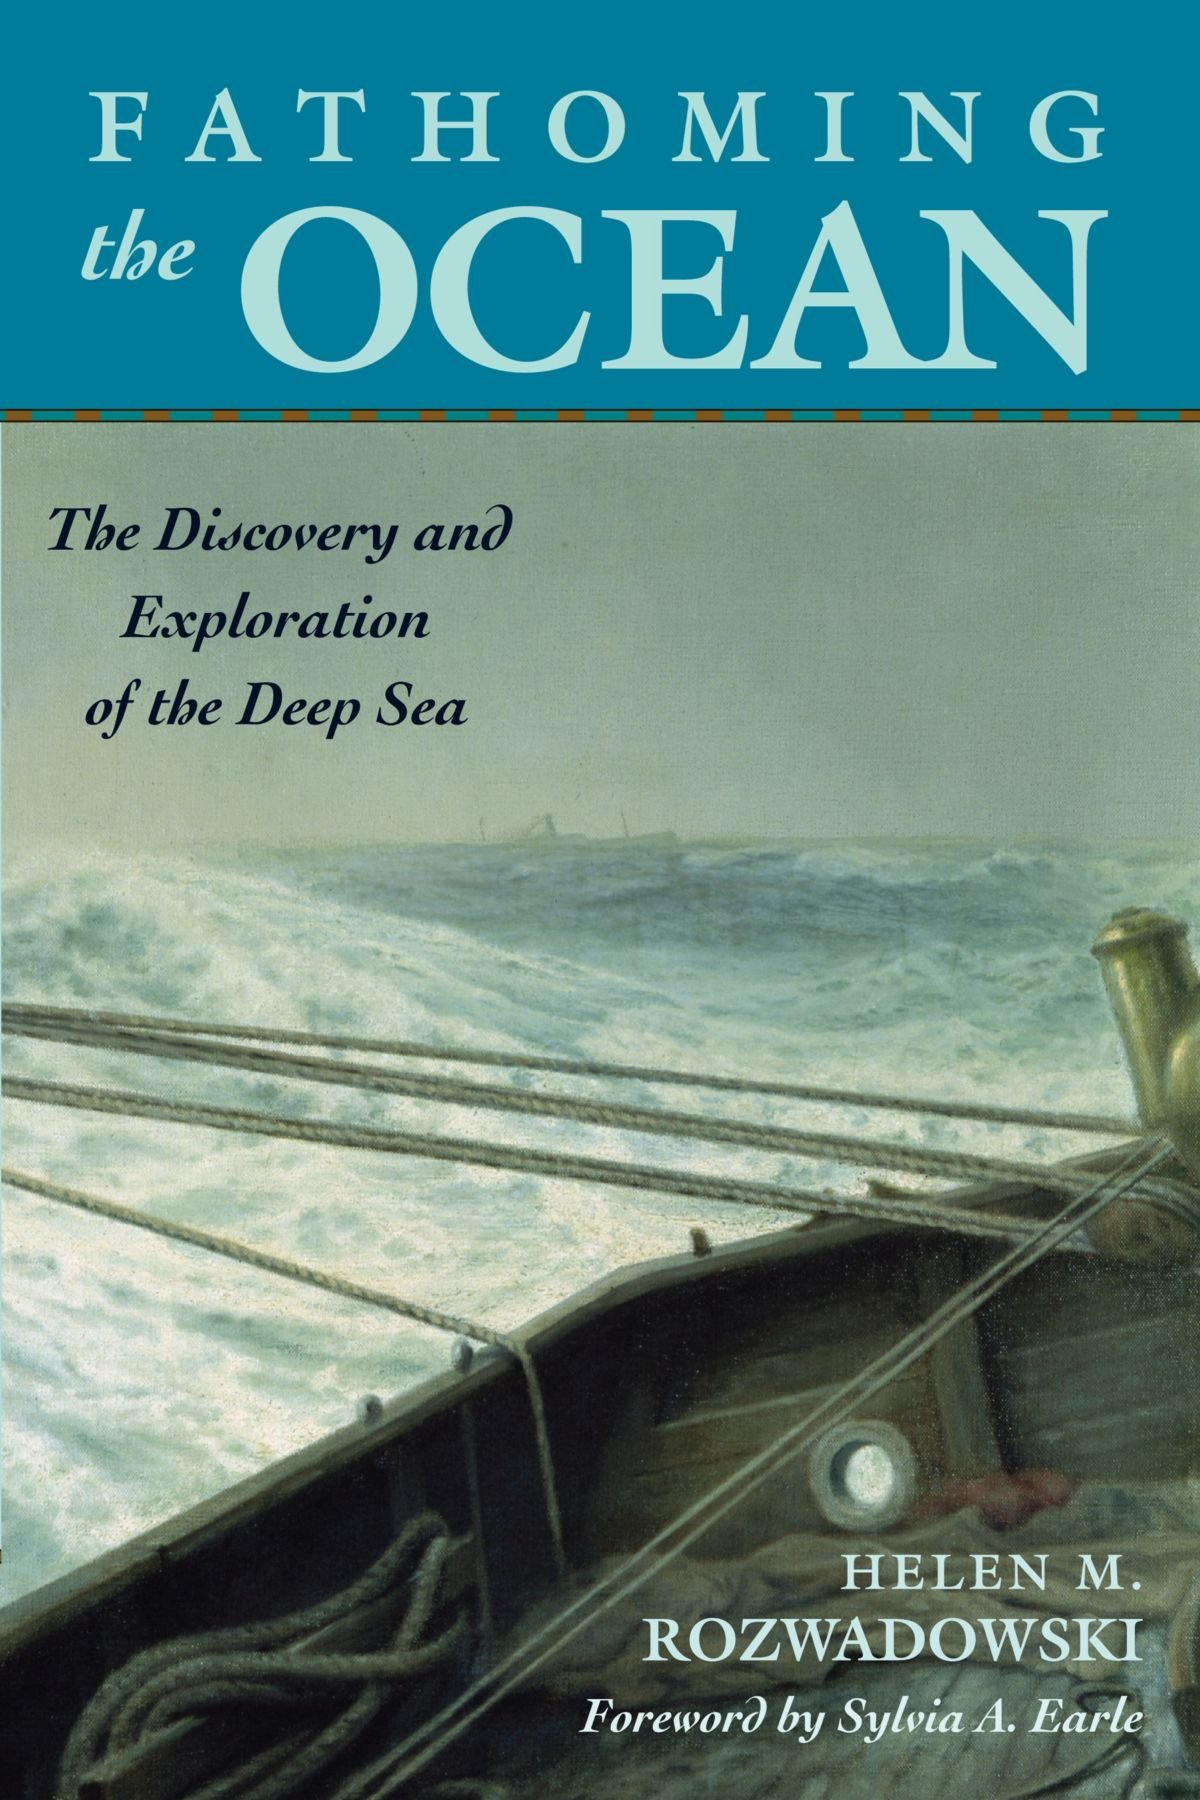 Fathoming the Ocean: The Discovery and Exploration of the Deep Sea: Helen  M. Rozwadowski, Sylvia Earle: 9780674027565: Amazon.com: Books